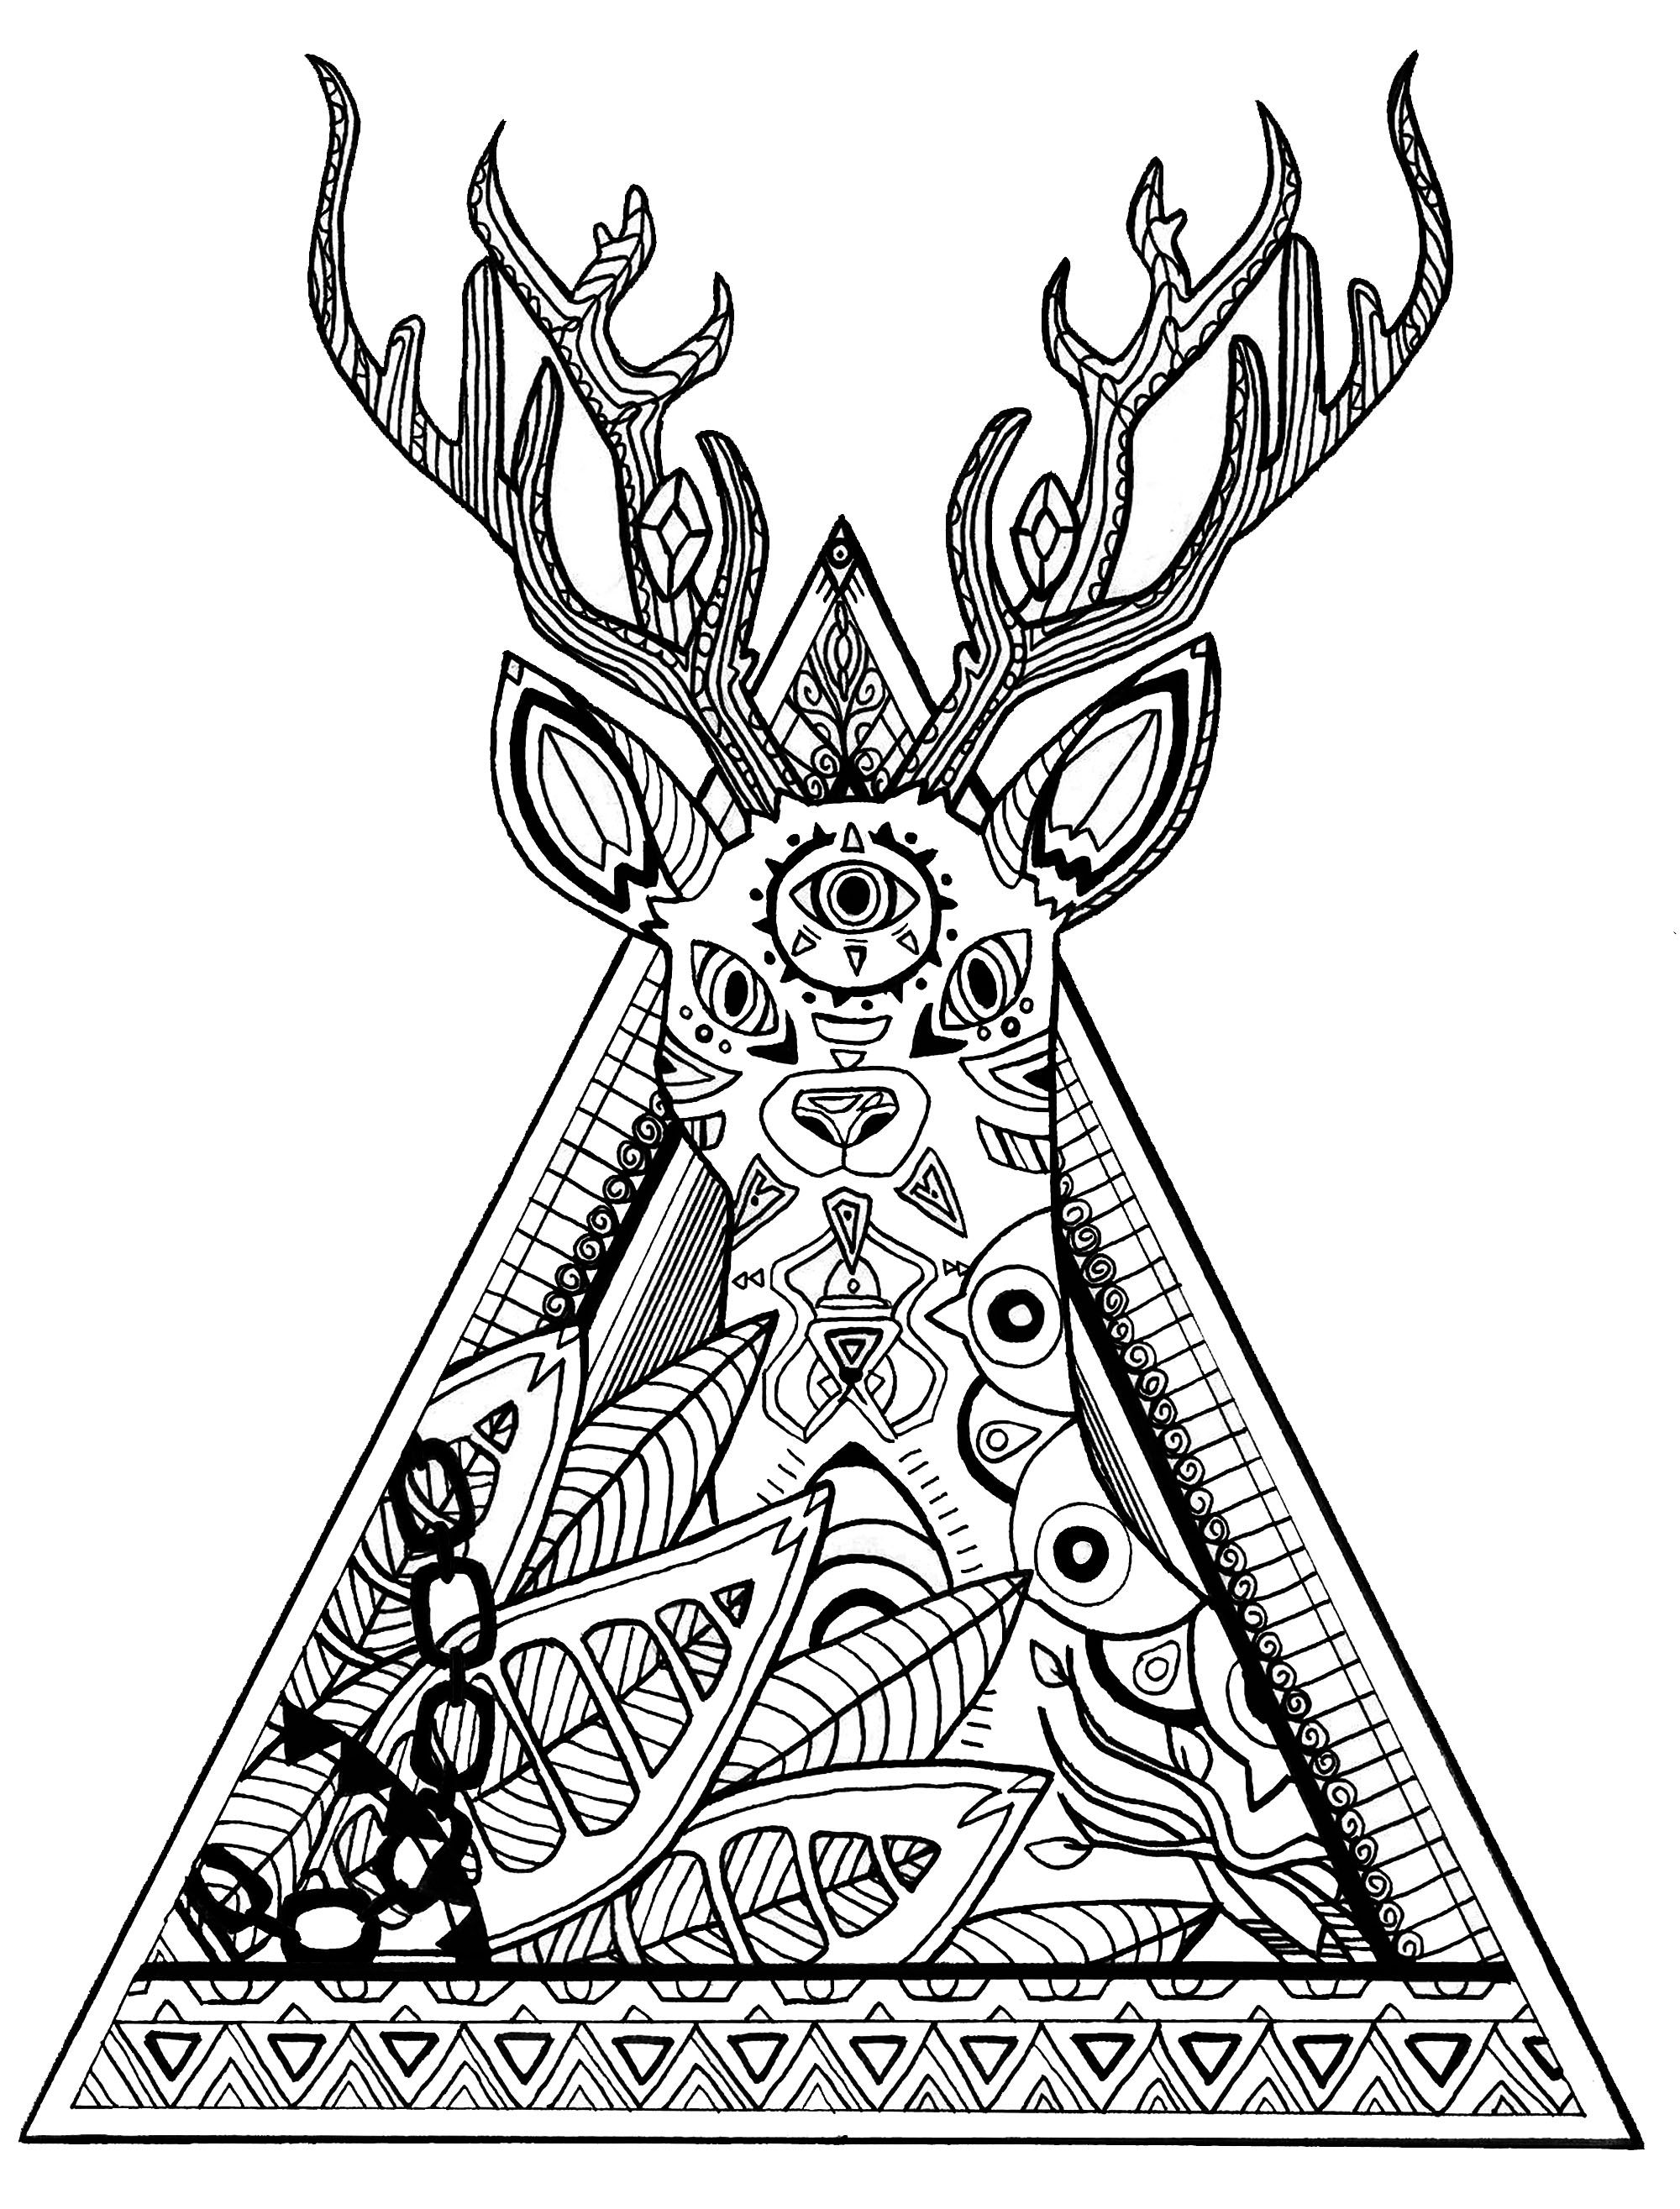 Deer in a triangle Deers Adult Coloring Pages ADULT